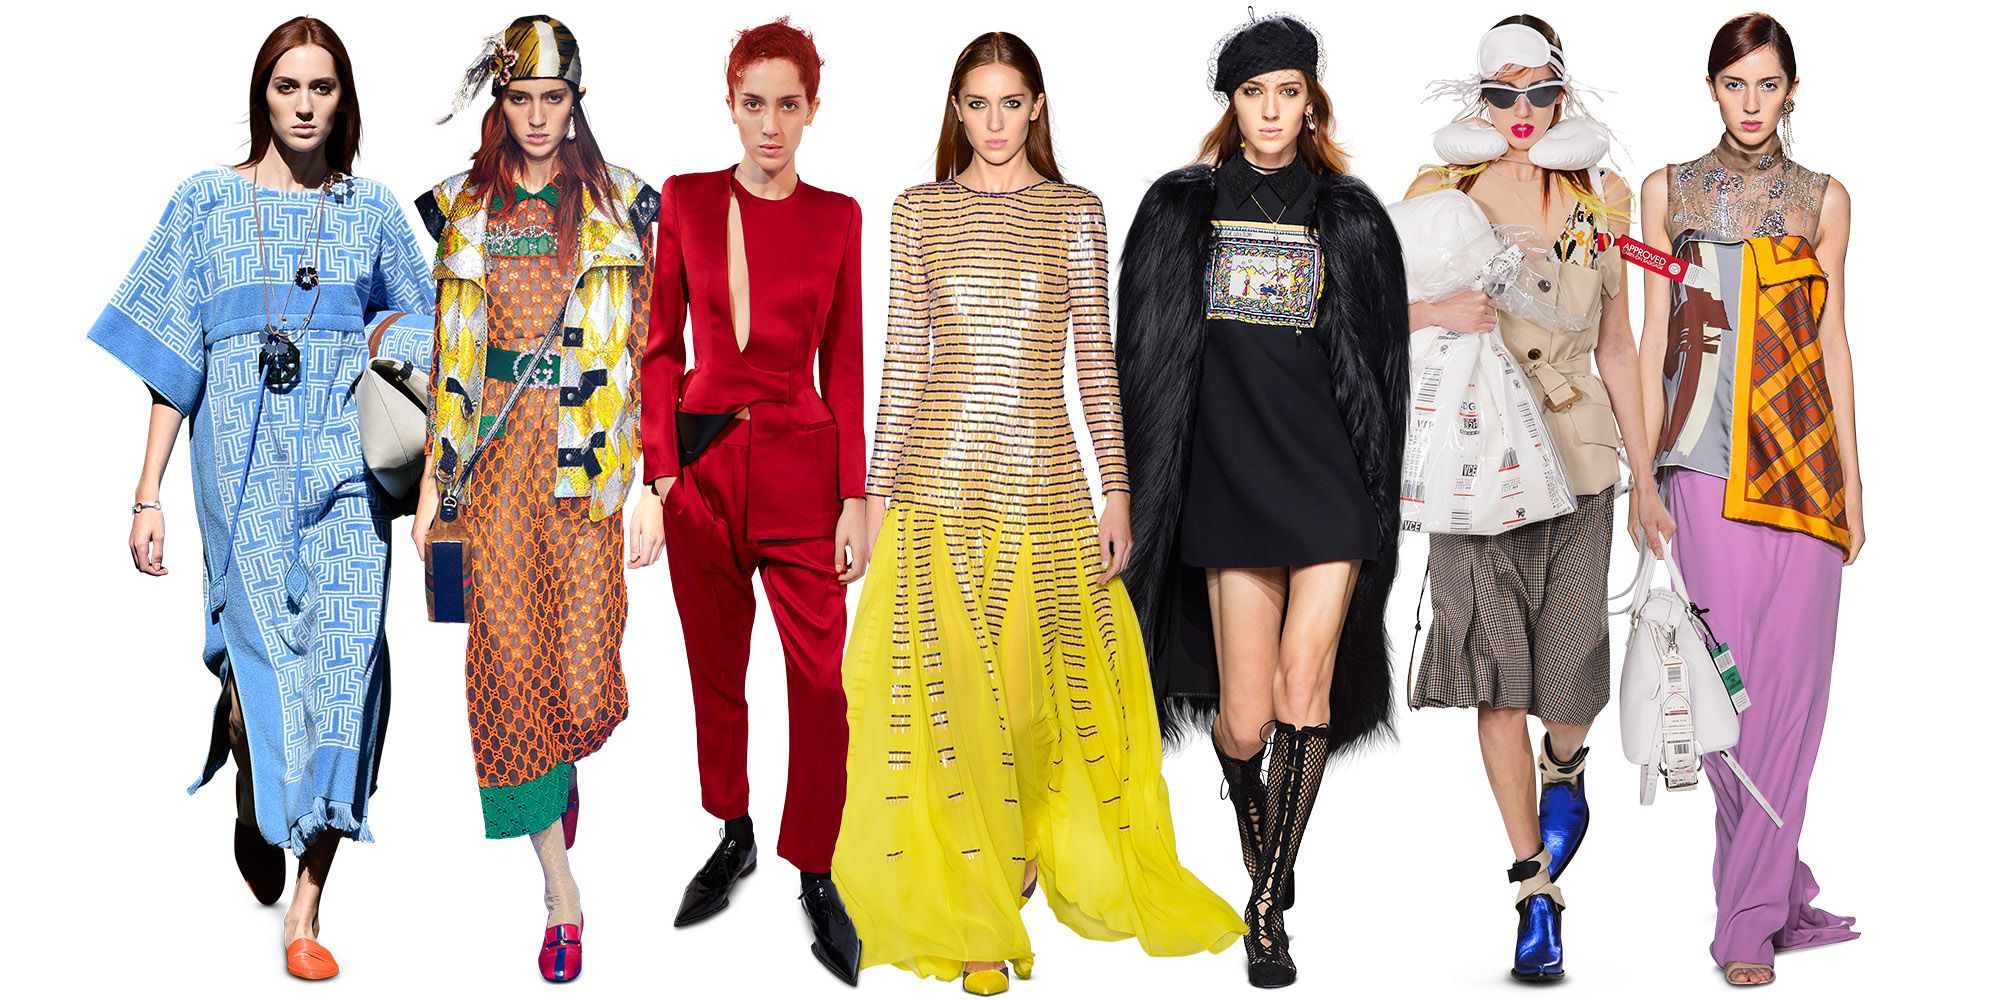 0f7ac4873e Nobody Knew Model Teddy Quinlivan Was Transgender—Here s Why She Came Out